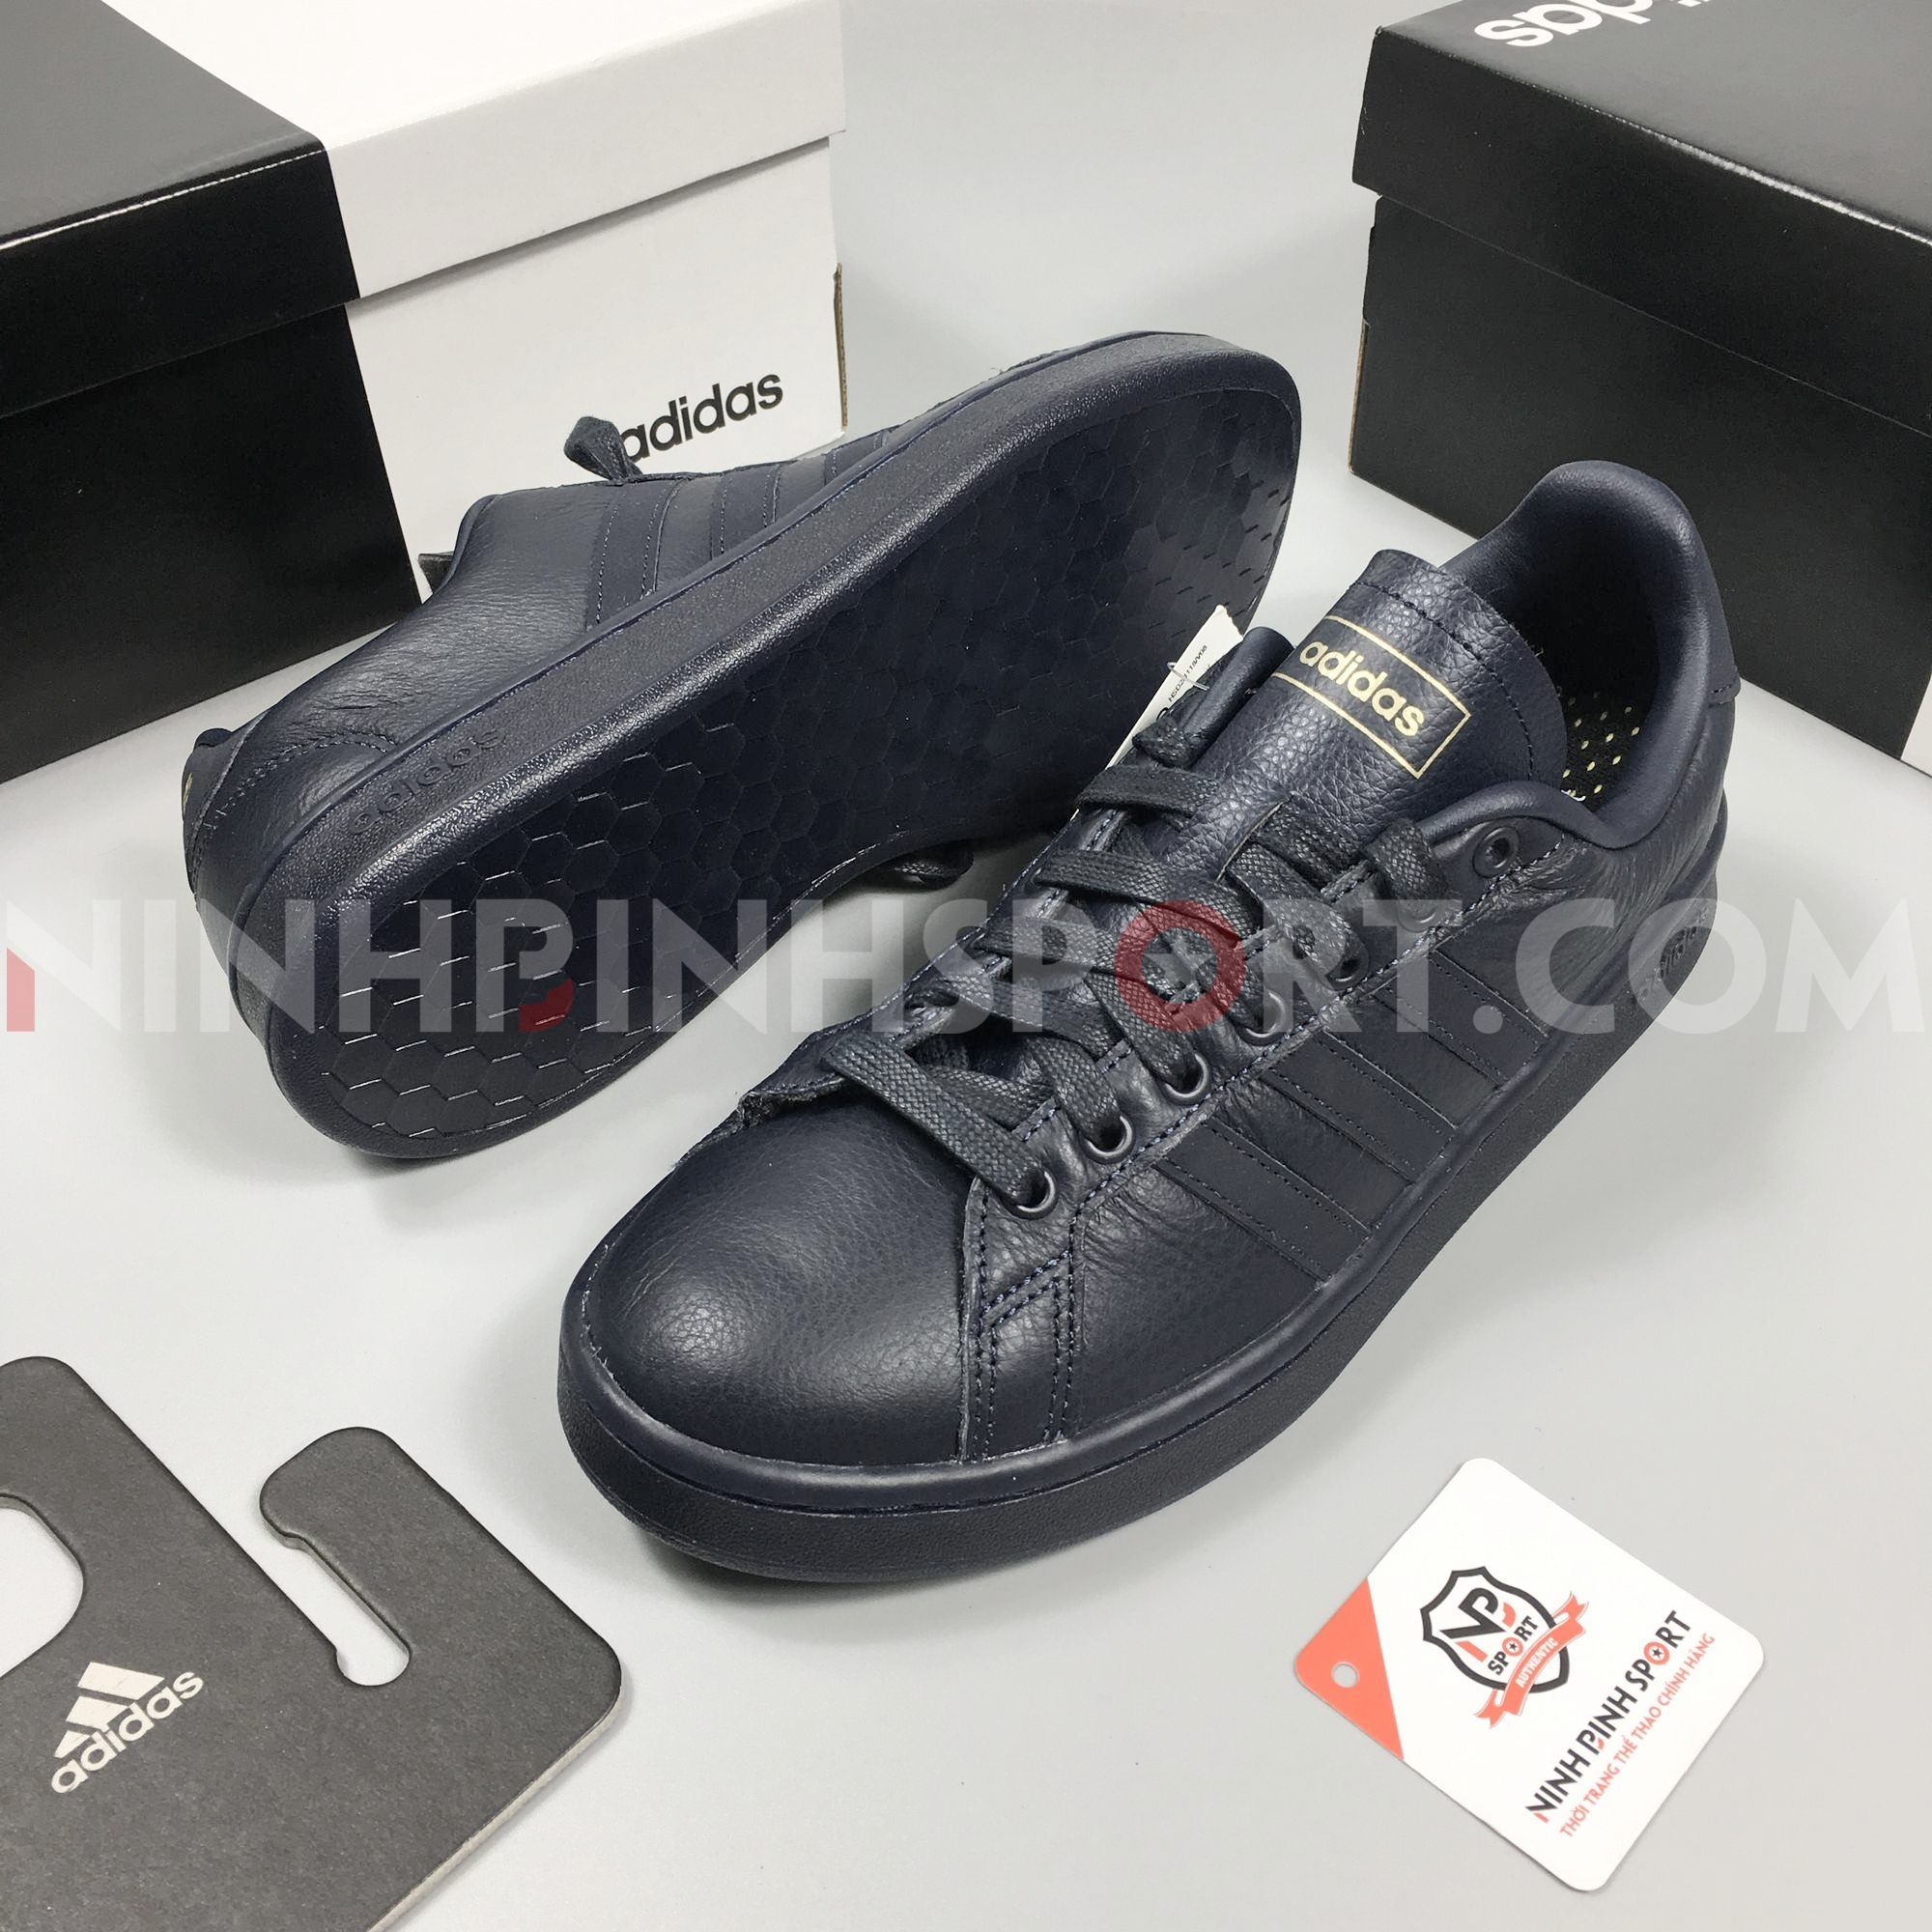 Giày thể thao nam Adidas Grand Court EE7883